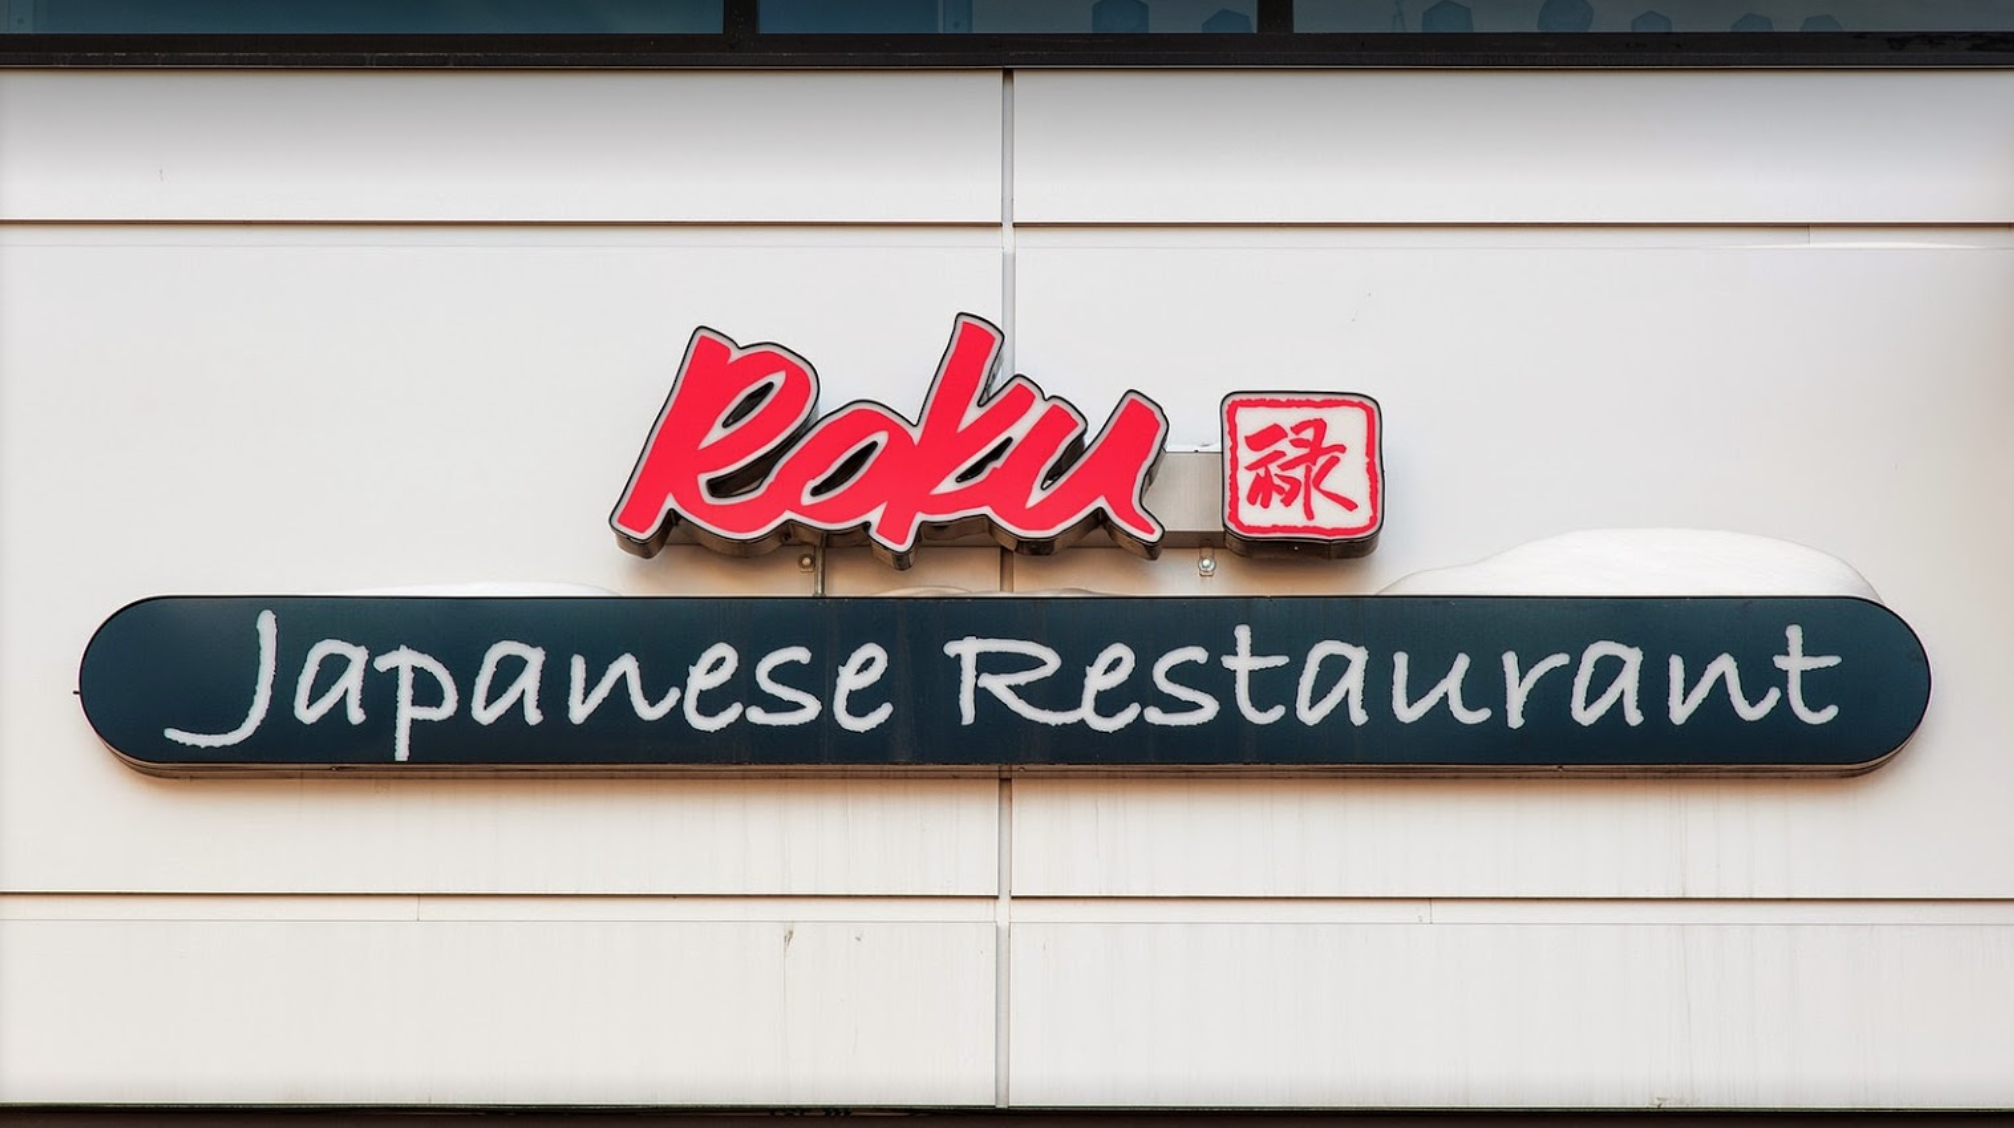 Roku, a Japanese Haven of Special Flavors